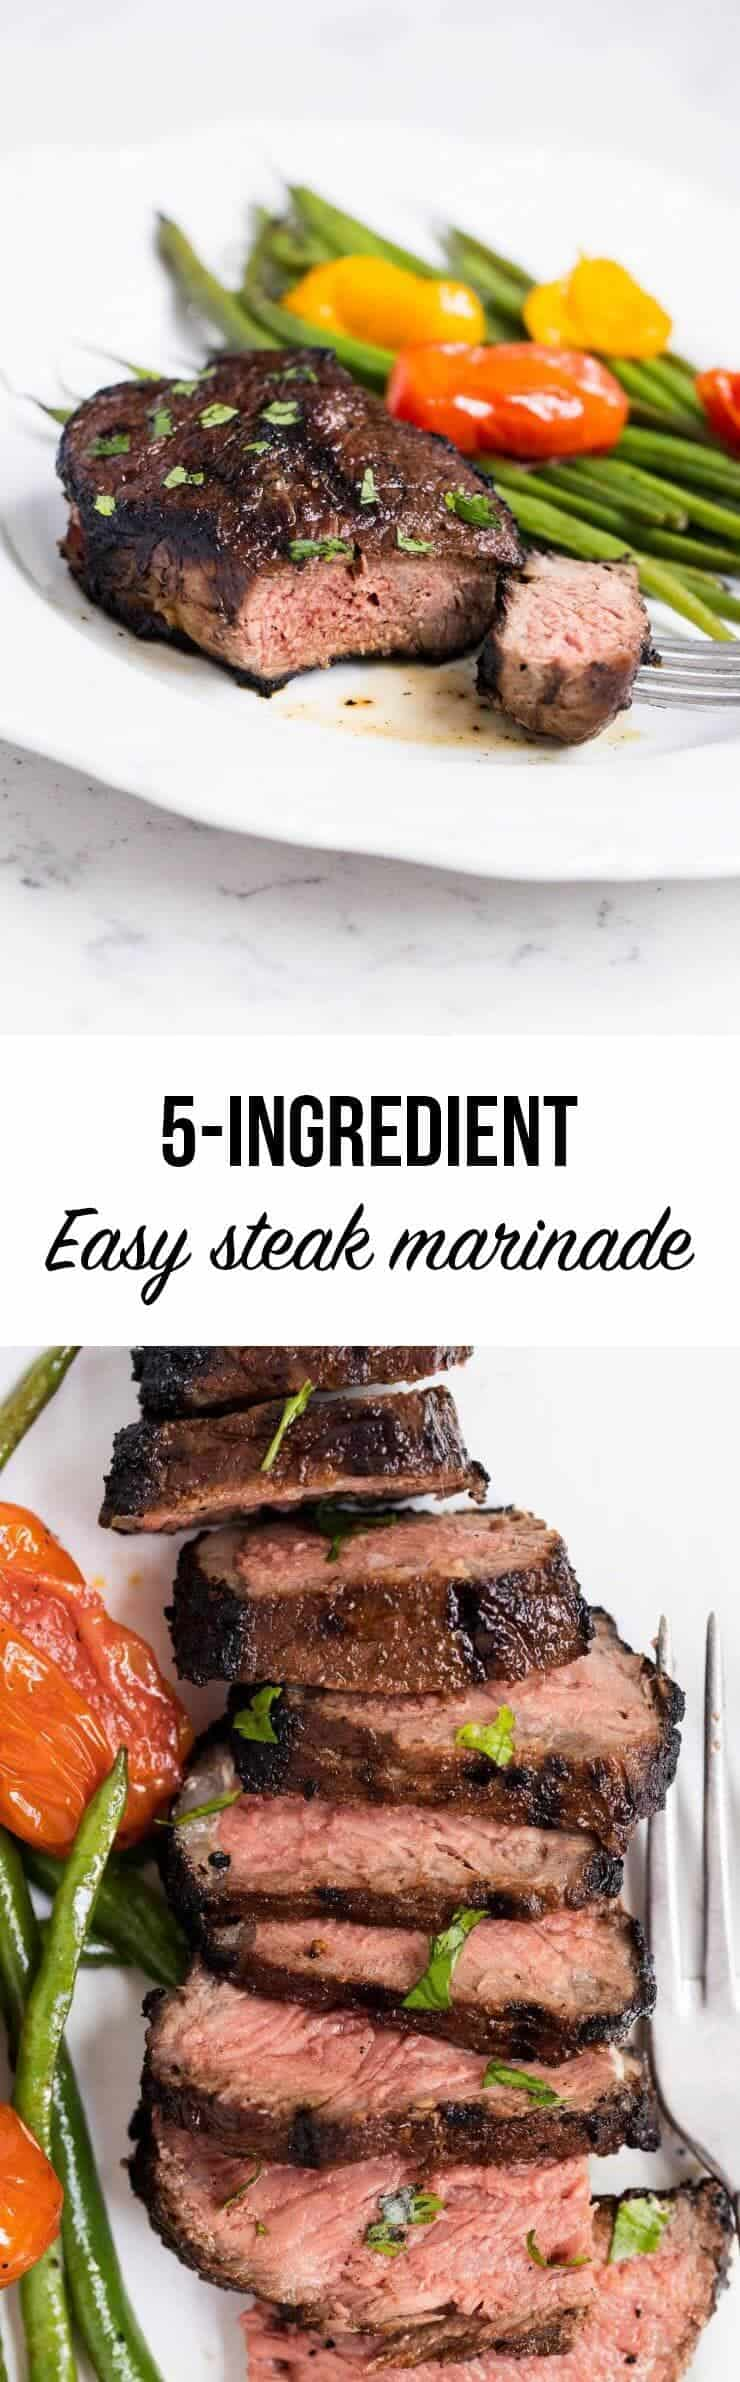 steak marinade